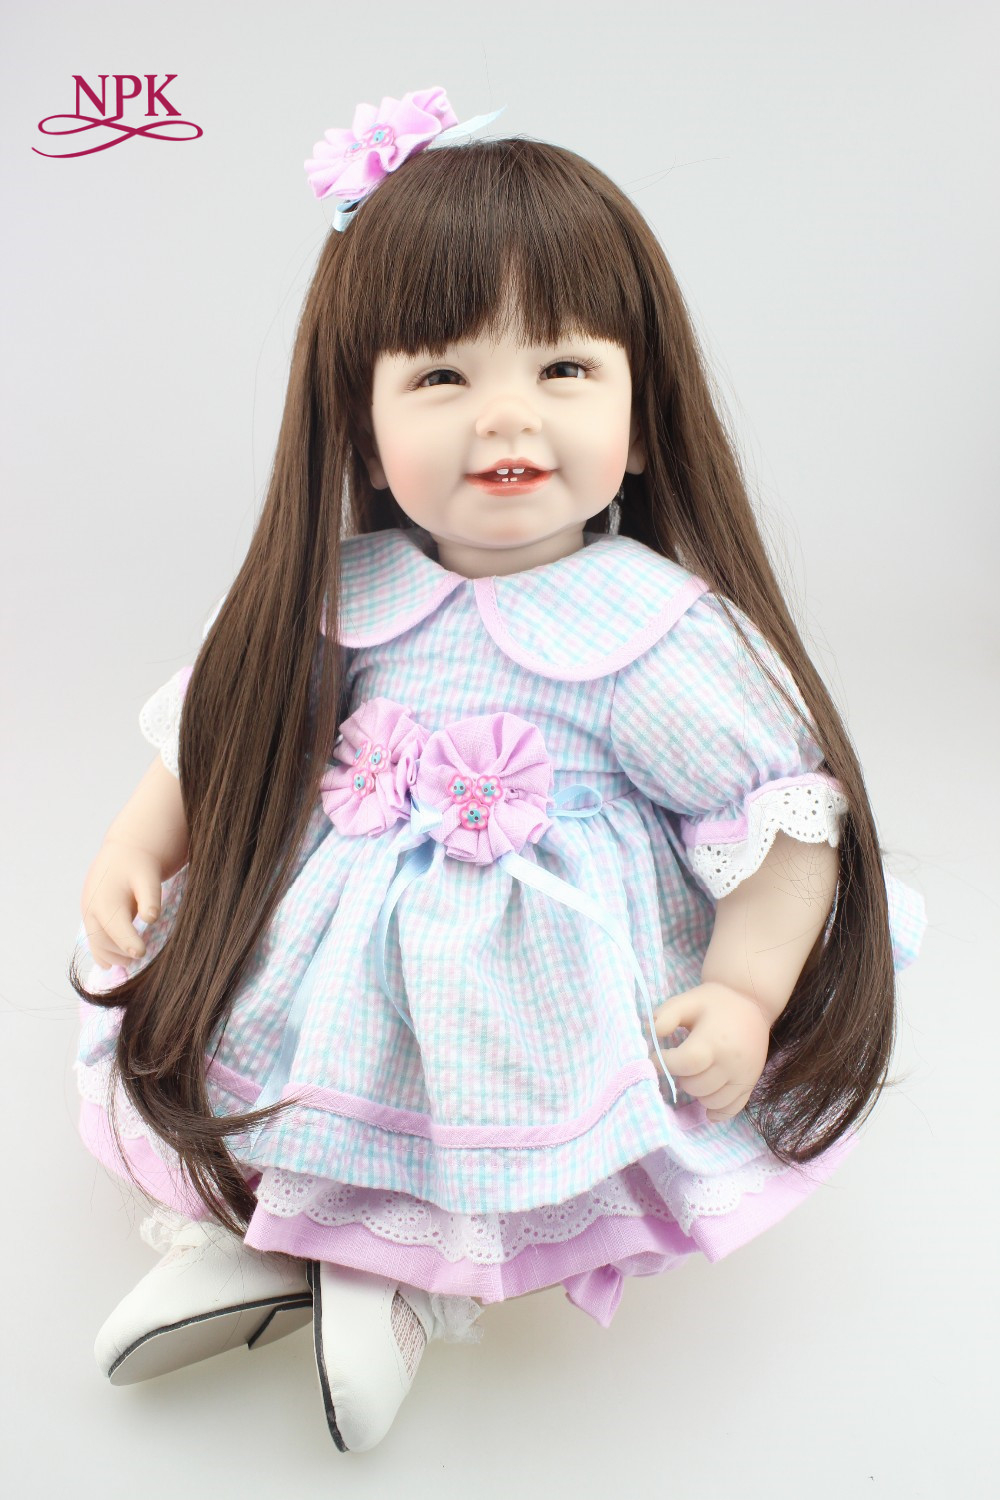 NPK Reborn Baby Doll with long hair Realistic Soft silicone Reborn Babies Girl 22Inch Adorable Bebe Kids Brinquedos boneca Toy npk cute smile baby girl dolls real soft silicone reborn babies 55 cm with fiber hair realistic boneca reborn doll